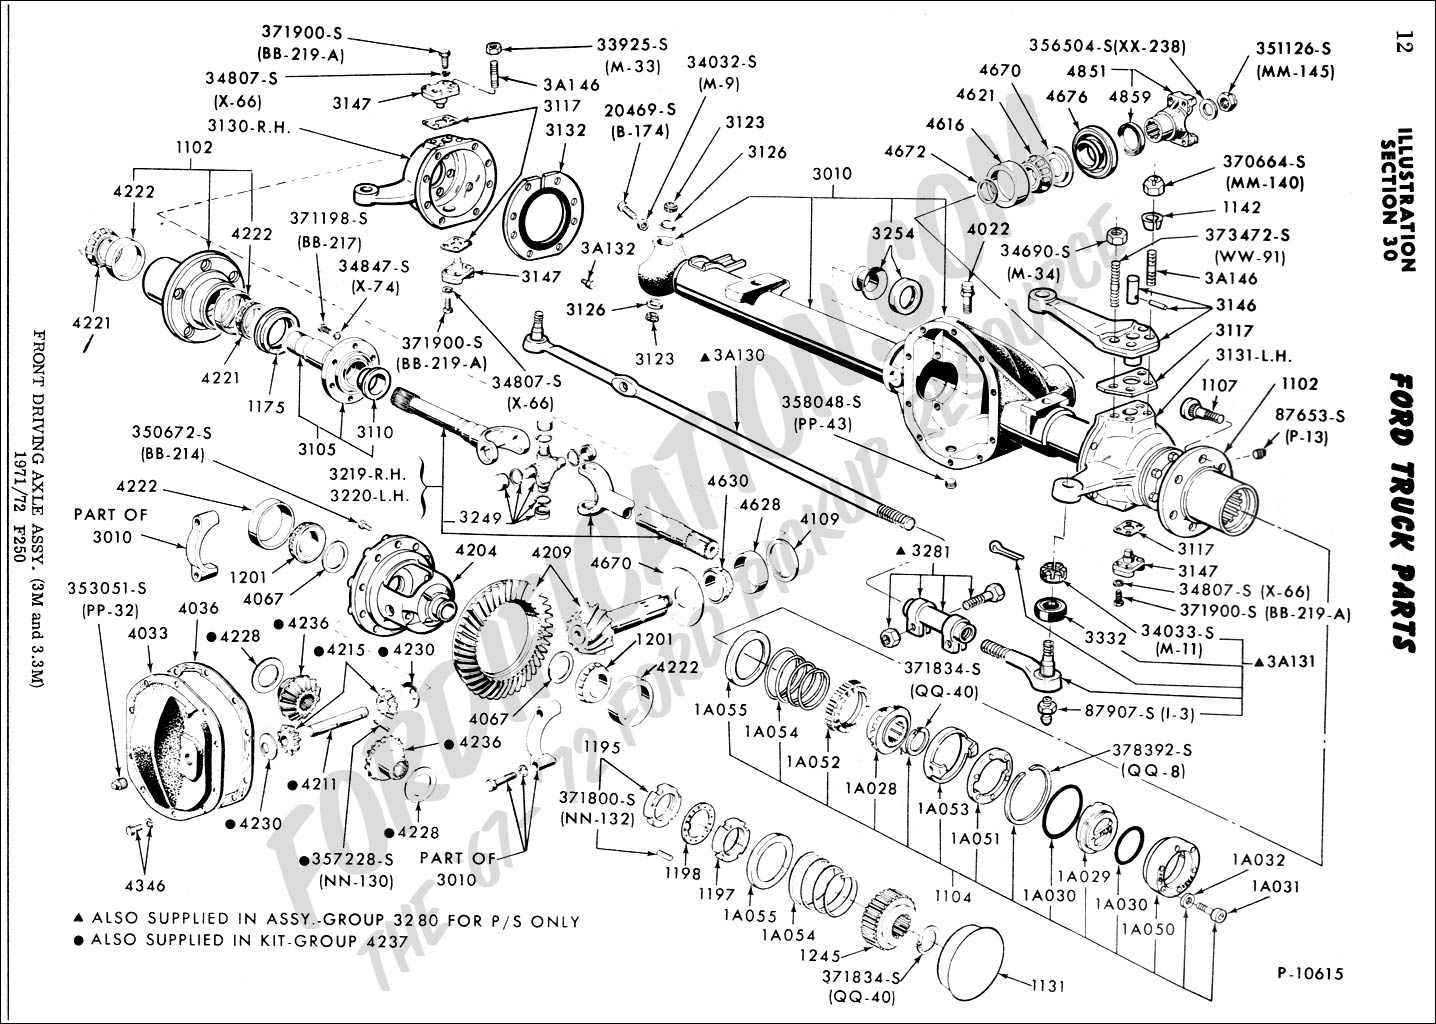 2004 Ford F350 4 Wheel Drive Wiring Diagram Will Be F 150 Fx4 2000 F250 Super Duty 4x4 Front Axle With 1996 350 1995